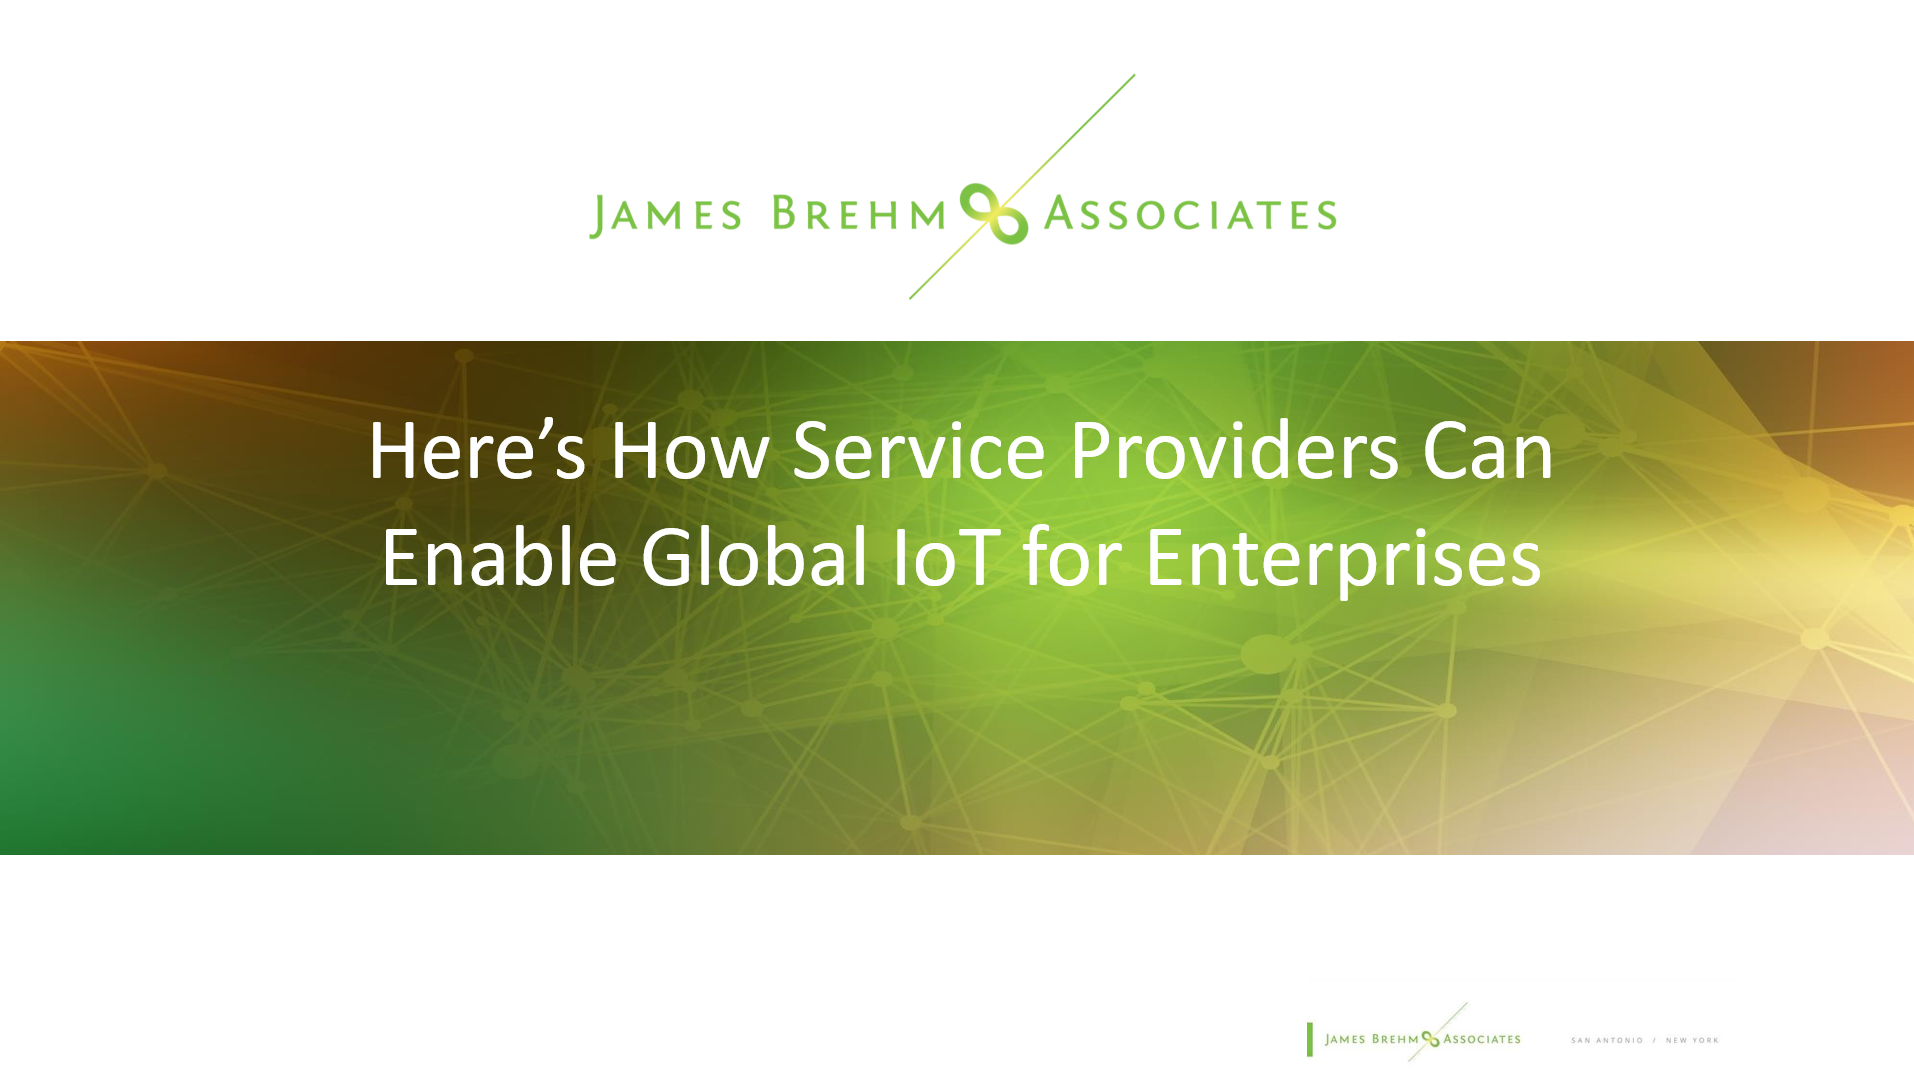 Here's How Service Providers Can Enable Global IoT for Enterprises (1)